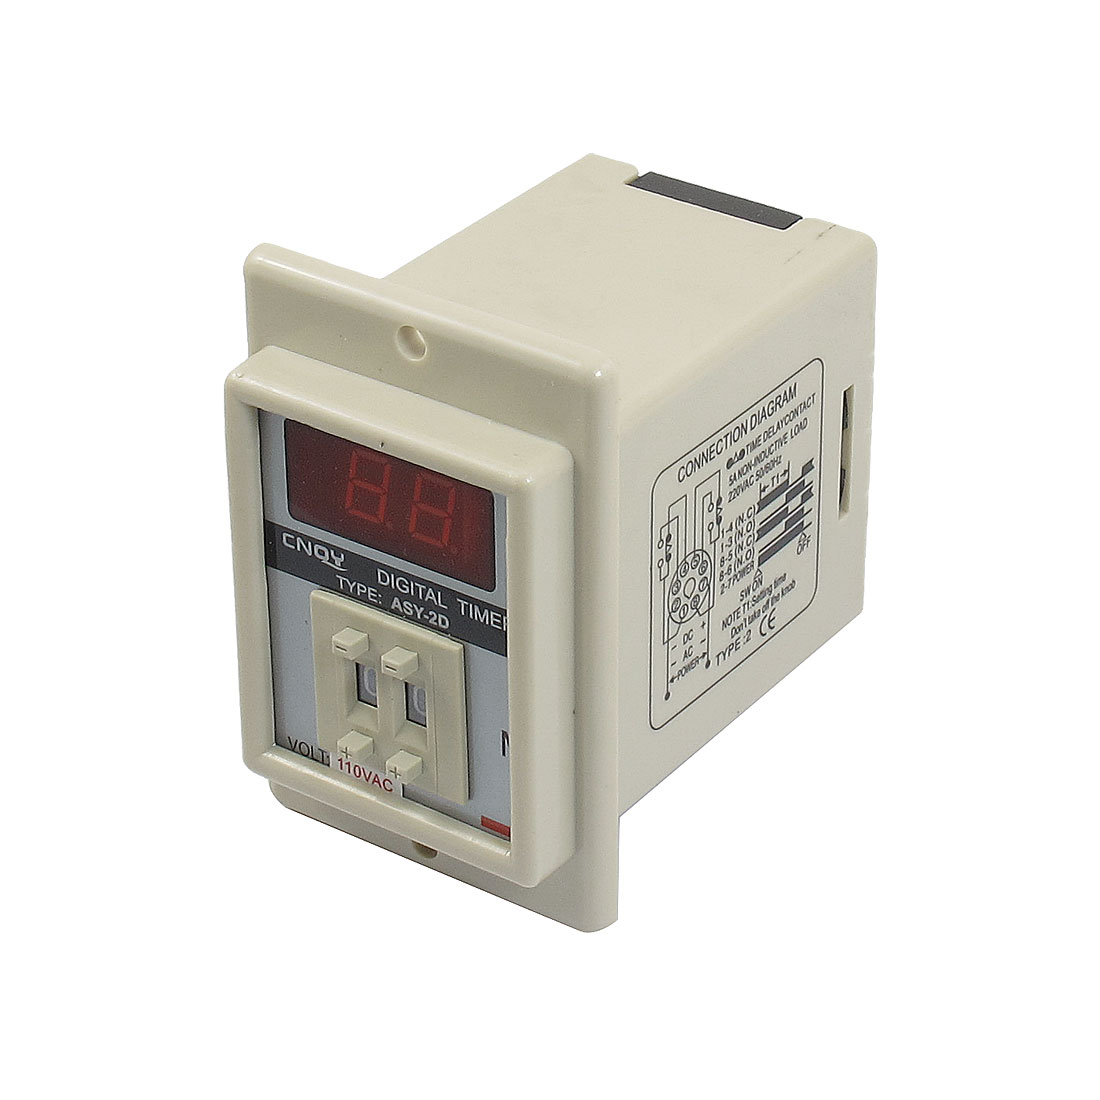 AC 110V 8 Pin 1-99 Minutes Digital Timer Time Delay Relay Beige ASY-2D